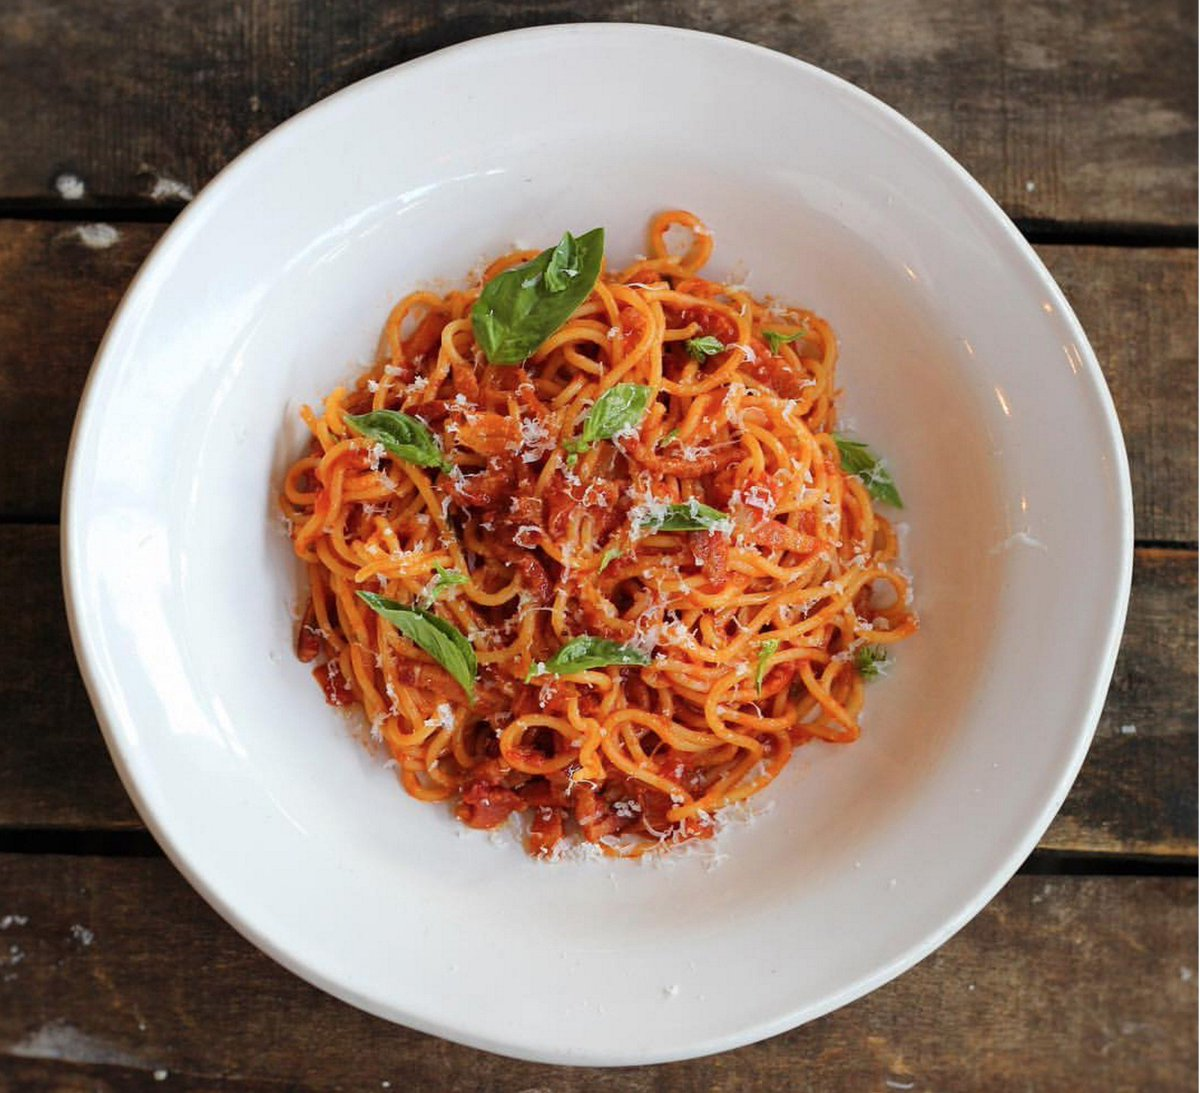 """RT @FoodRev: Join Jamie's support for Italy by ordering """"Pasta Amatriciana"""" #eatforitaly https://t.co/To6Oxk7is9 #FoodRevolution https://t.…"""